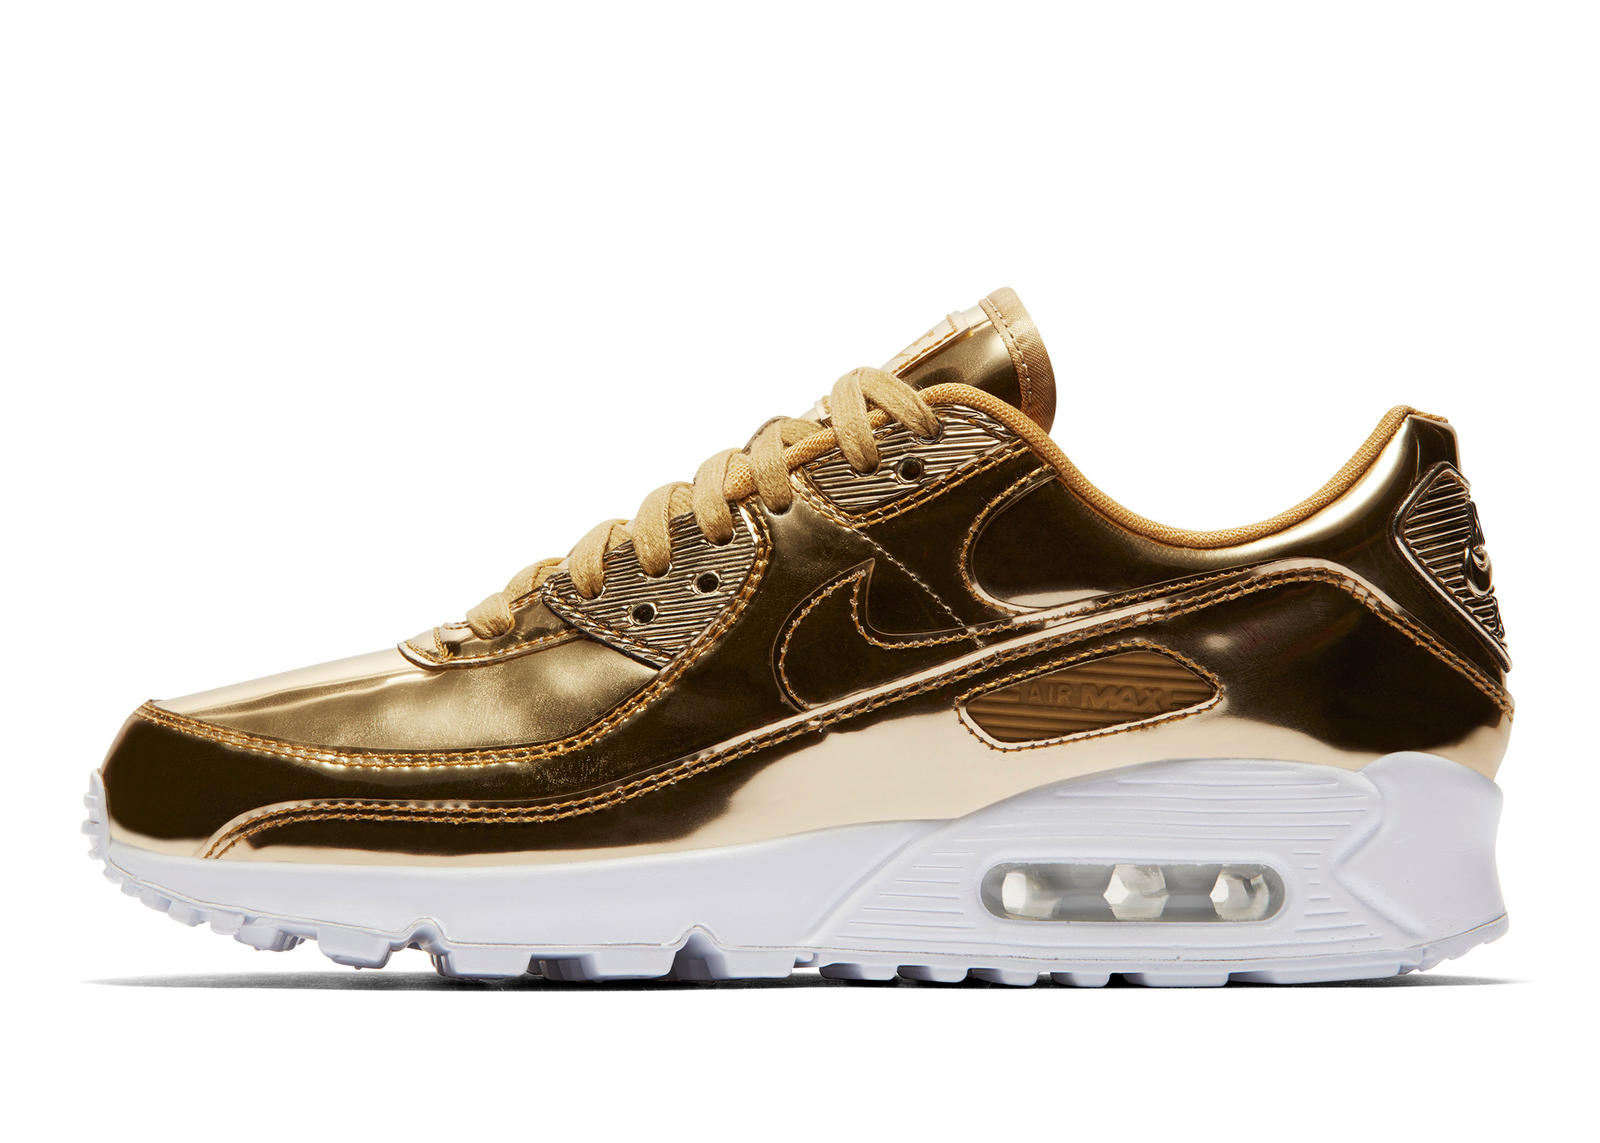 Buy Cheap Nike Air Max 90 Metallic Running Shoes Fake Sale 2020